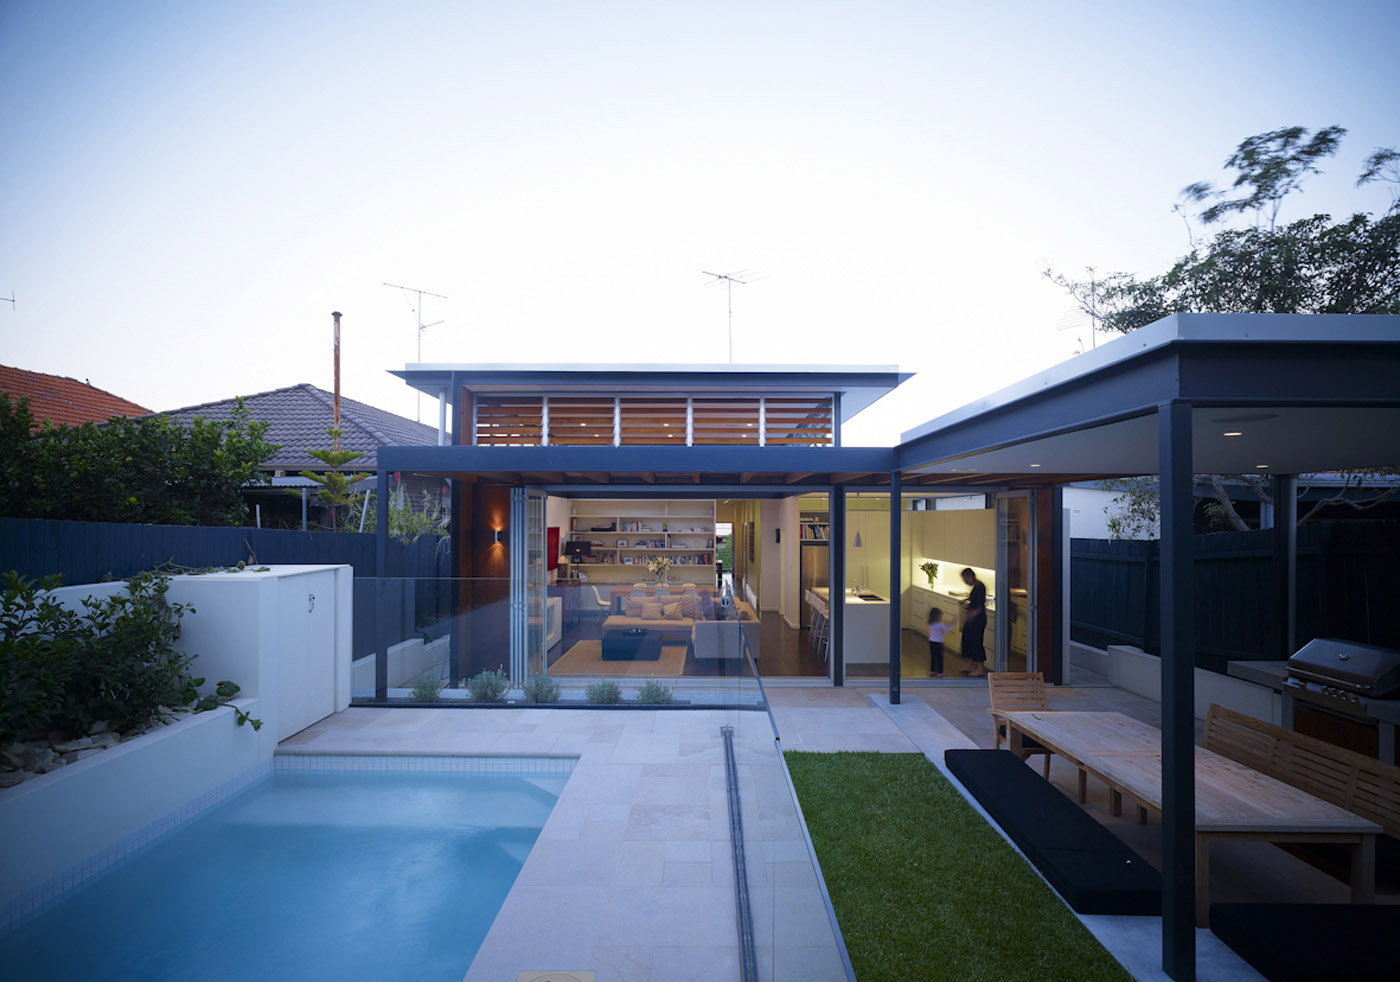 Lambert House by Sydney award winning residential architecture office Sam Crawford Architects. View to western facade from backyard with pool and outdoor barbecue.